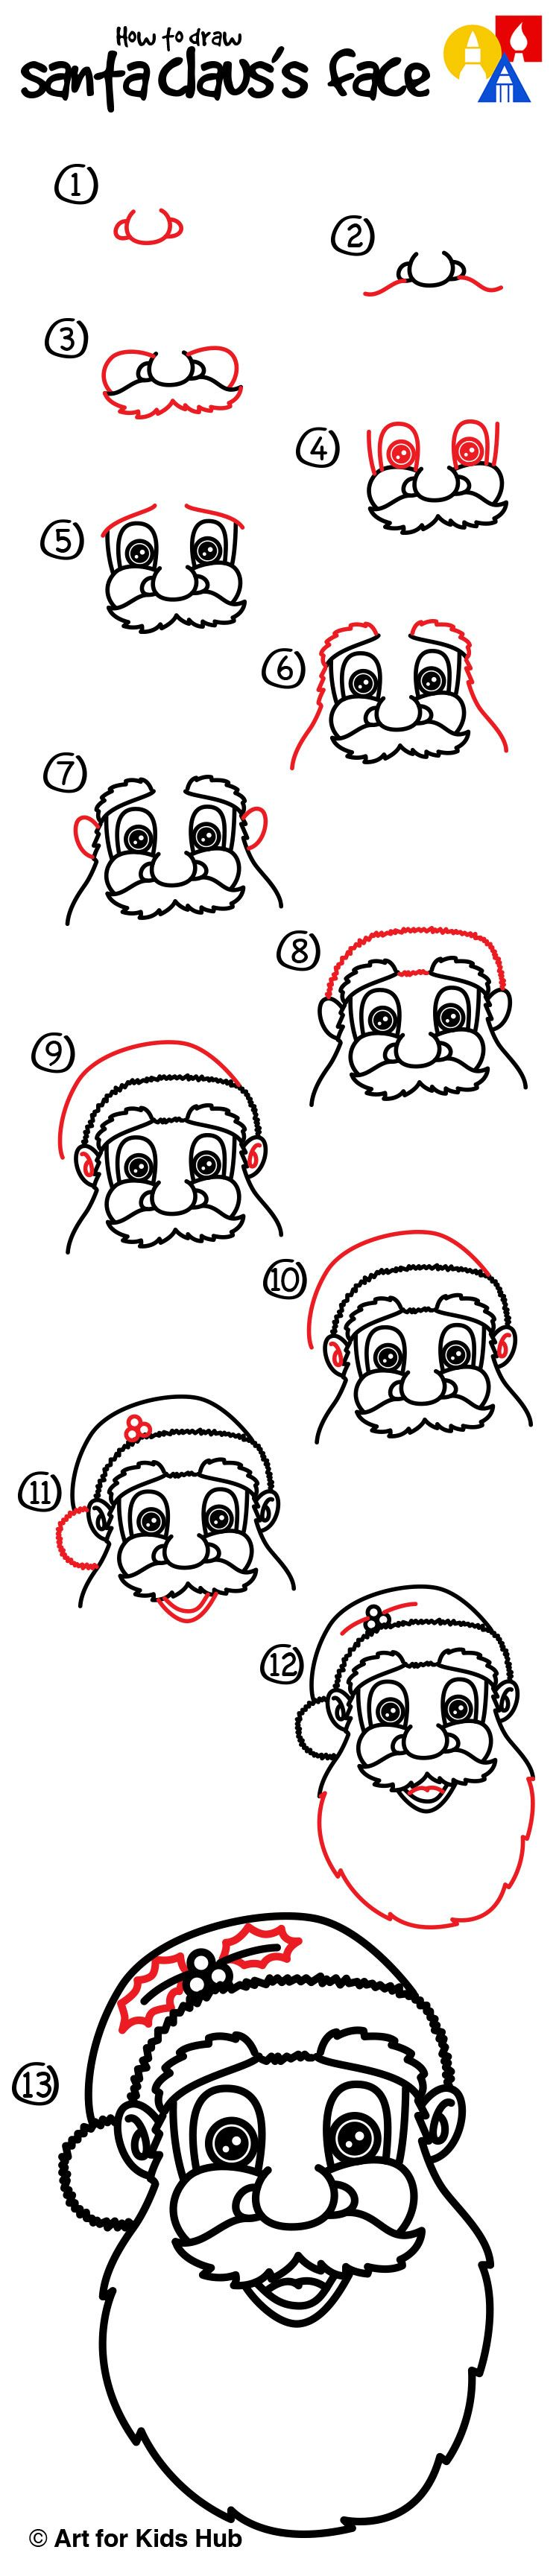 How To Draw Santa Claus's Face Art For Kids Hub Art